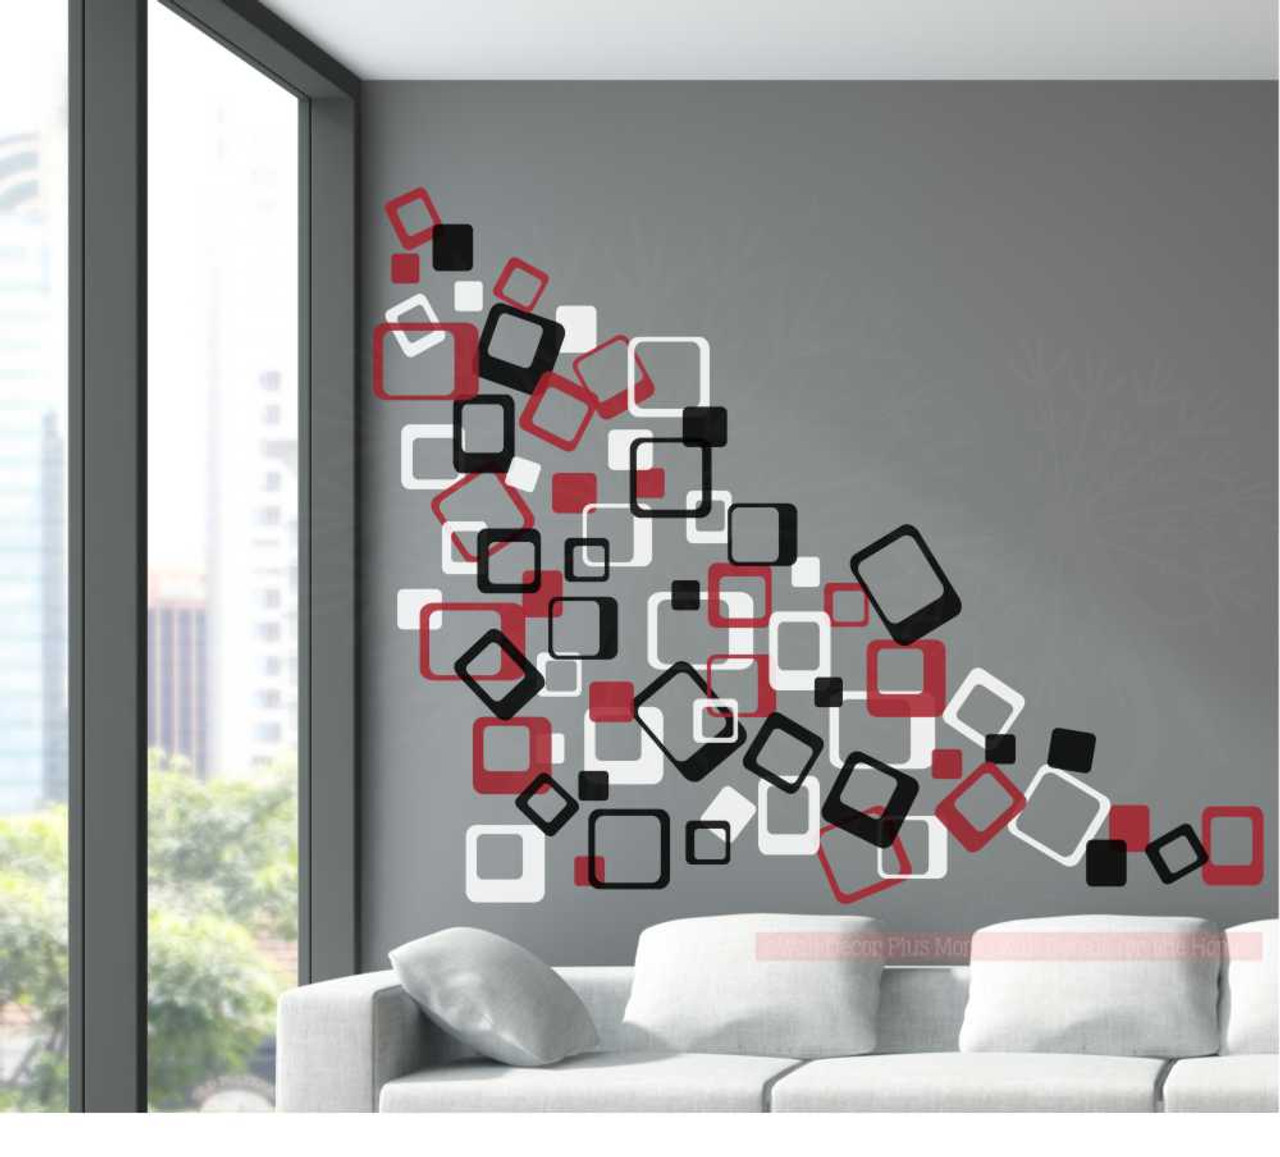 3 Color Funky Square Wall Vinyl Stickers Shapes   Red Black White